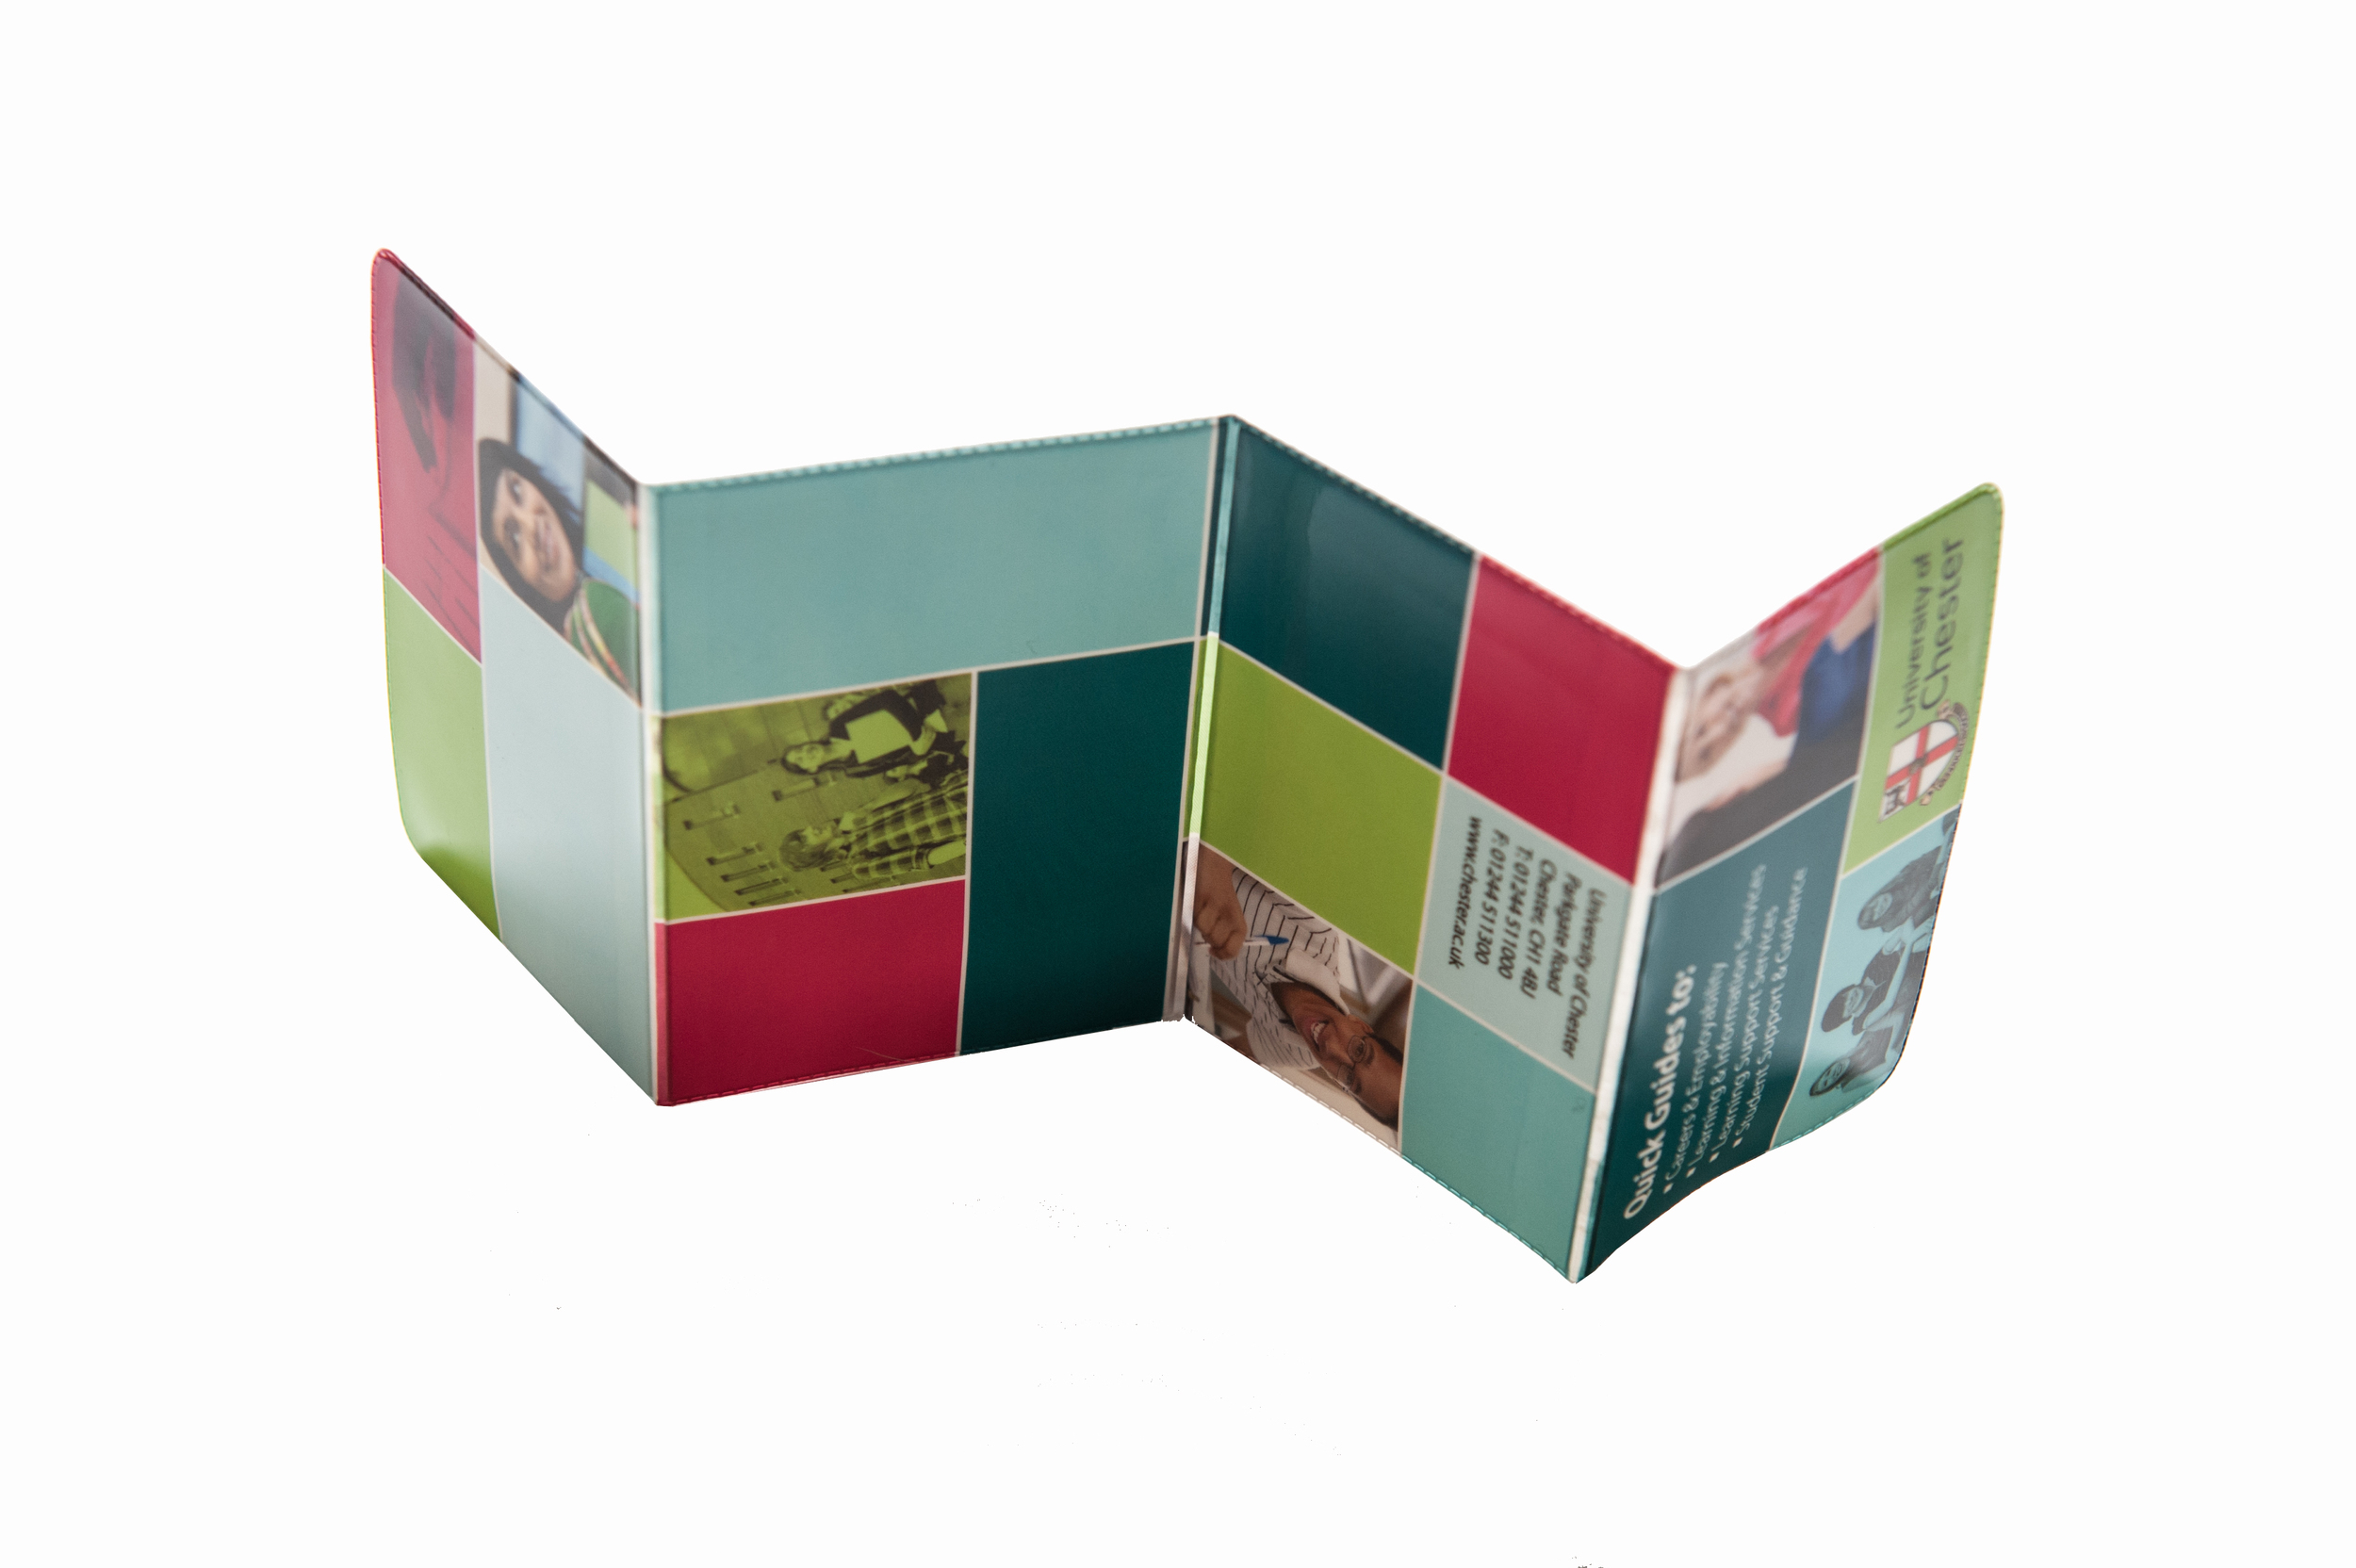 A trifold card holder